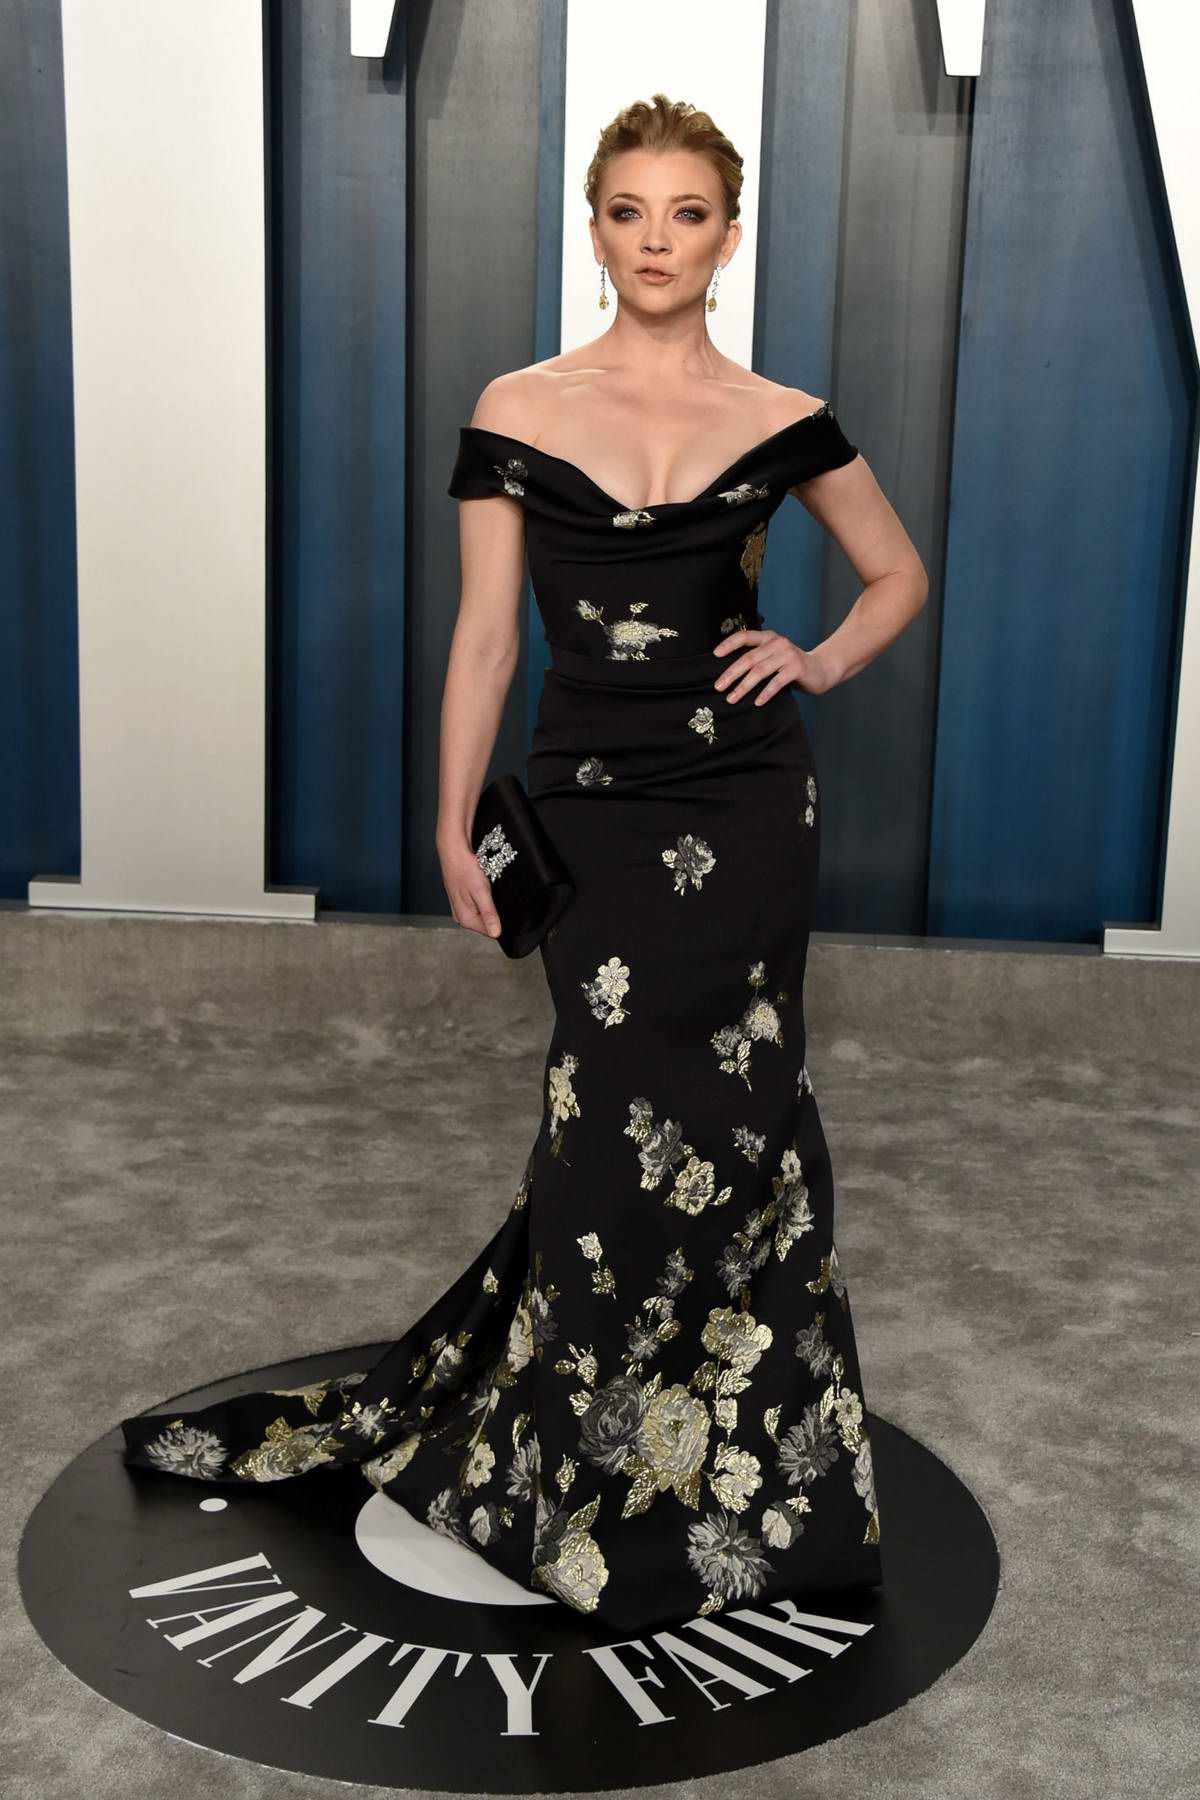 Natalie Dormer attends the 2020 Vanity Fair Oscar Party at Wallis Annenberg Center for the Performing Arts in Los Angeles